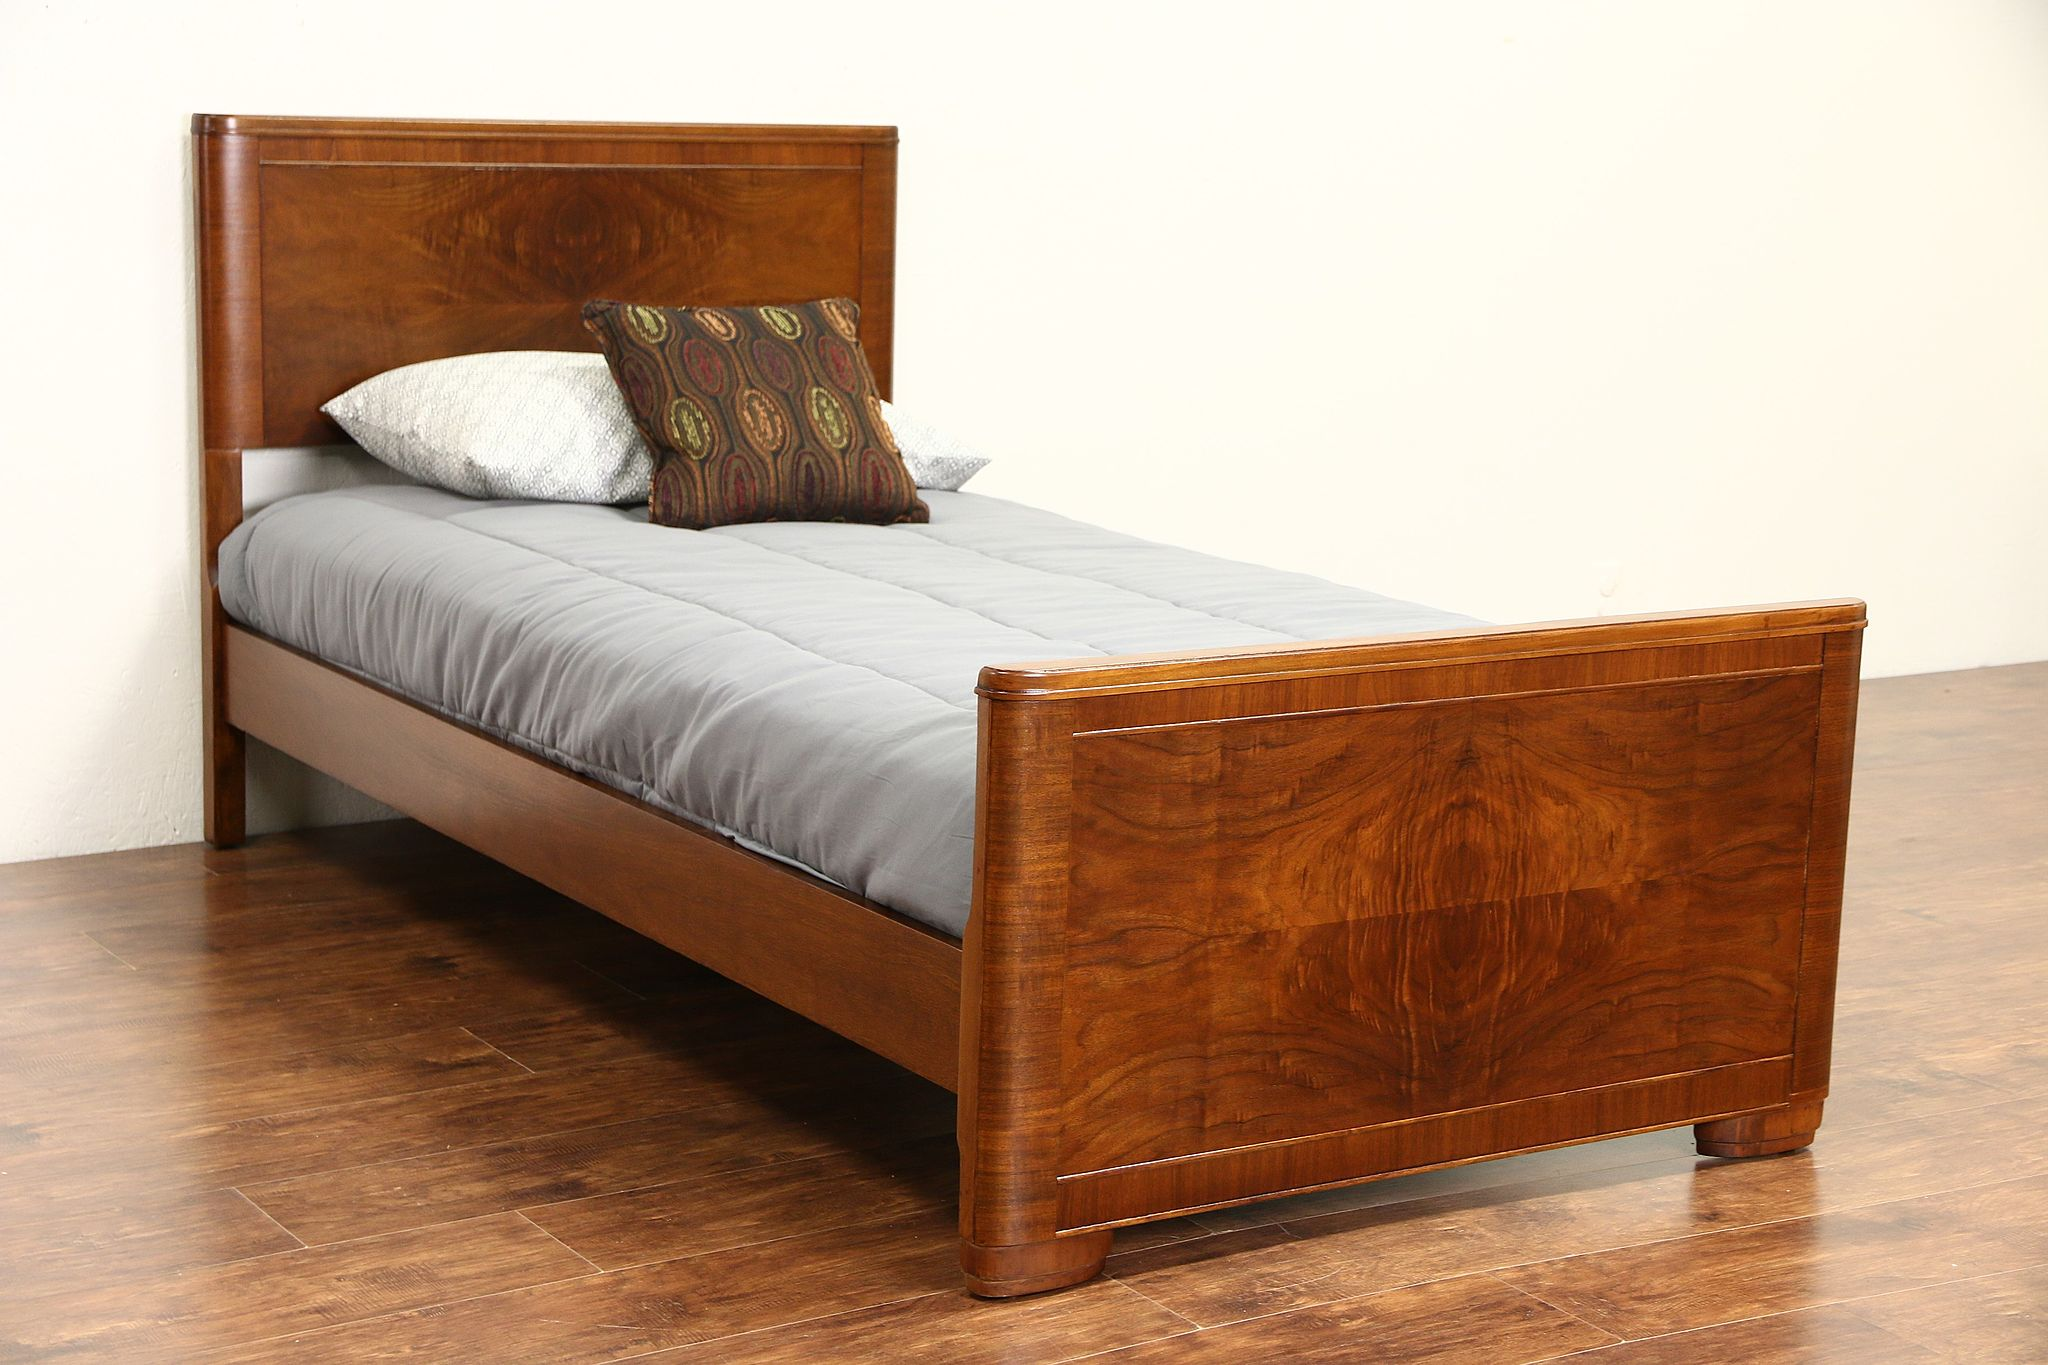 Sold Midcentury Modern 1950 Vintage Twin Or Single Size Walnut Bed Harp Gallery Antiques Furniture